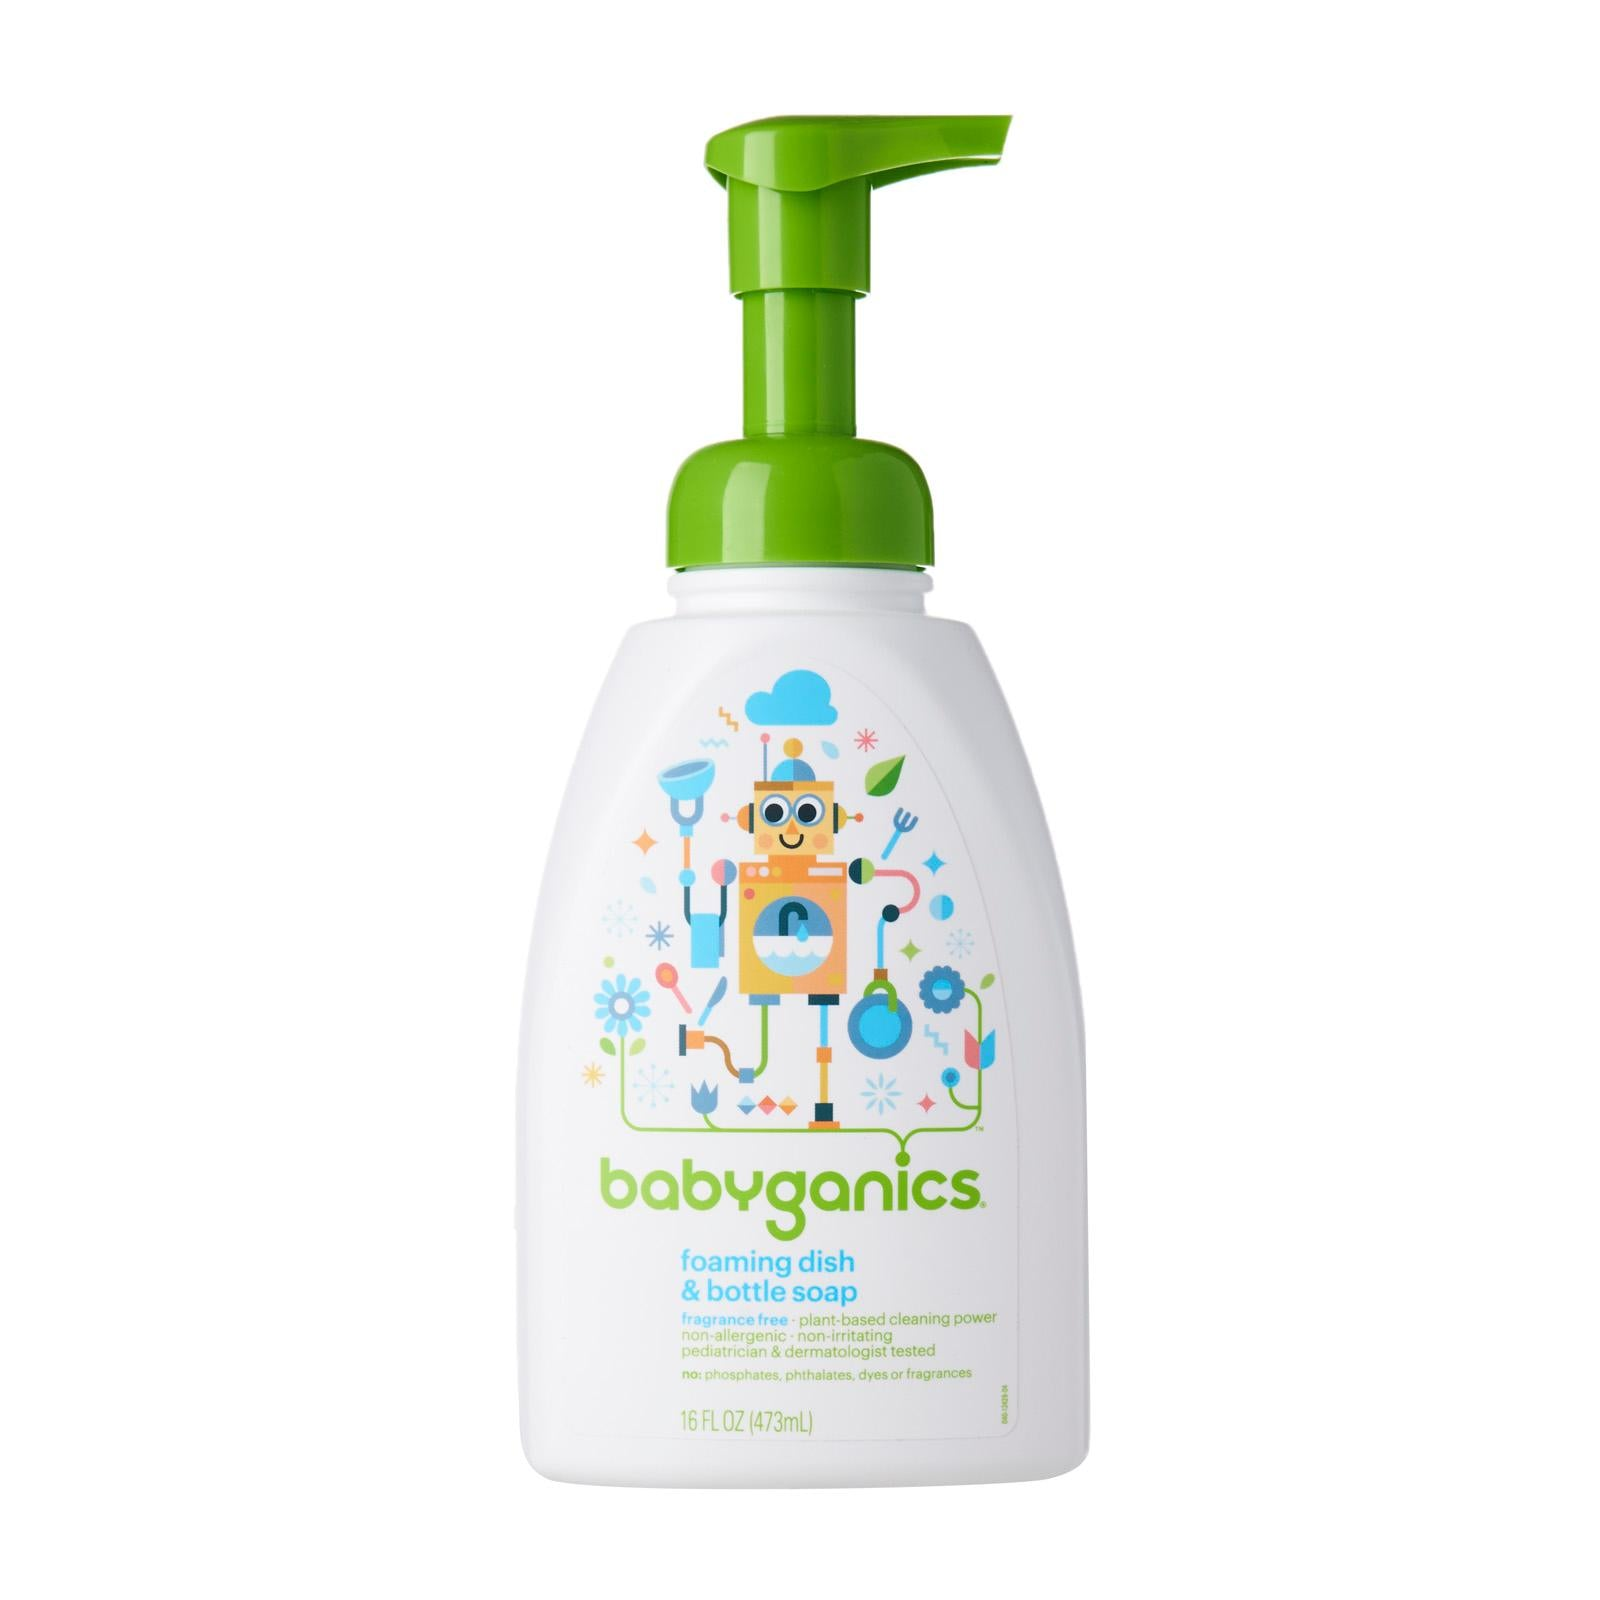 Babyganics Dish & Soap Bottle 16oz